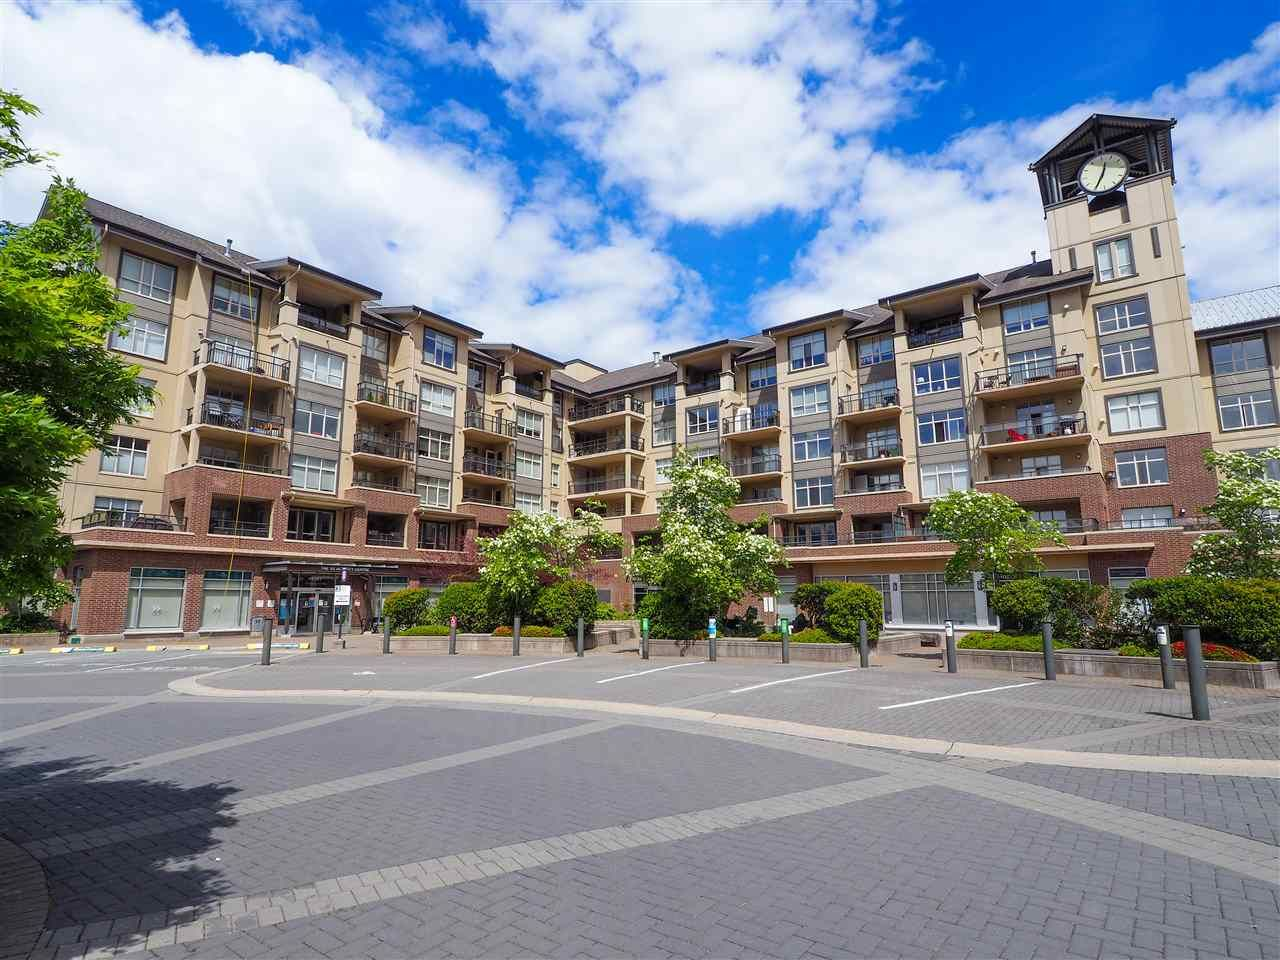 """Main Photo: 218 1211 VILLAGE GREEN Way in Squamish: Downtown SQ Condo for sale in """"Rockcliff"""" : MLS®# R2456399"""